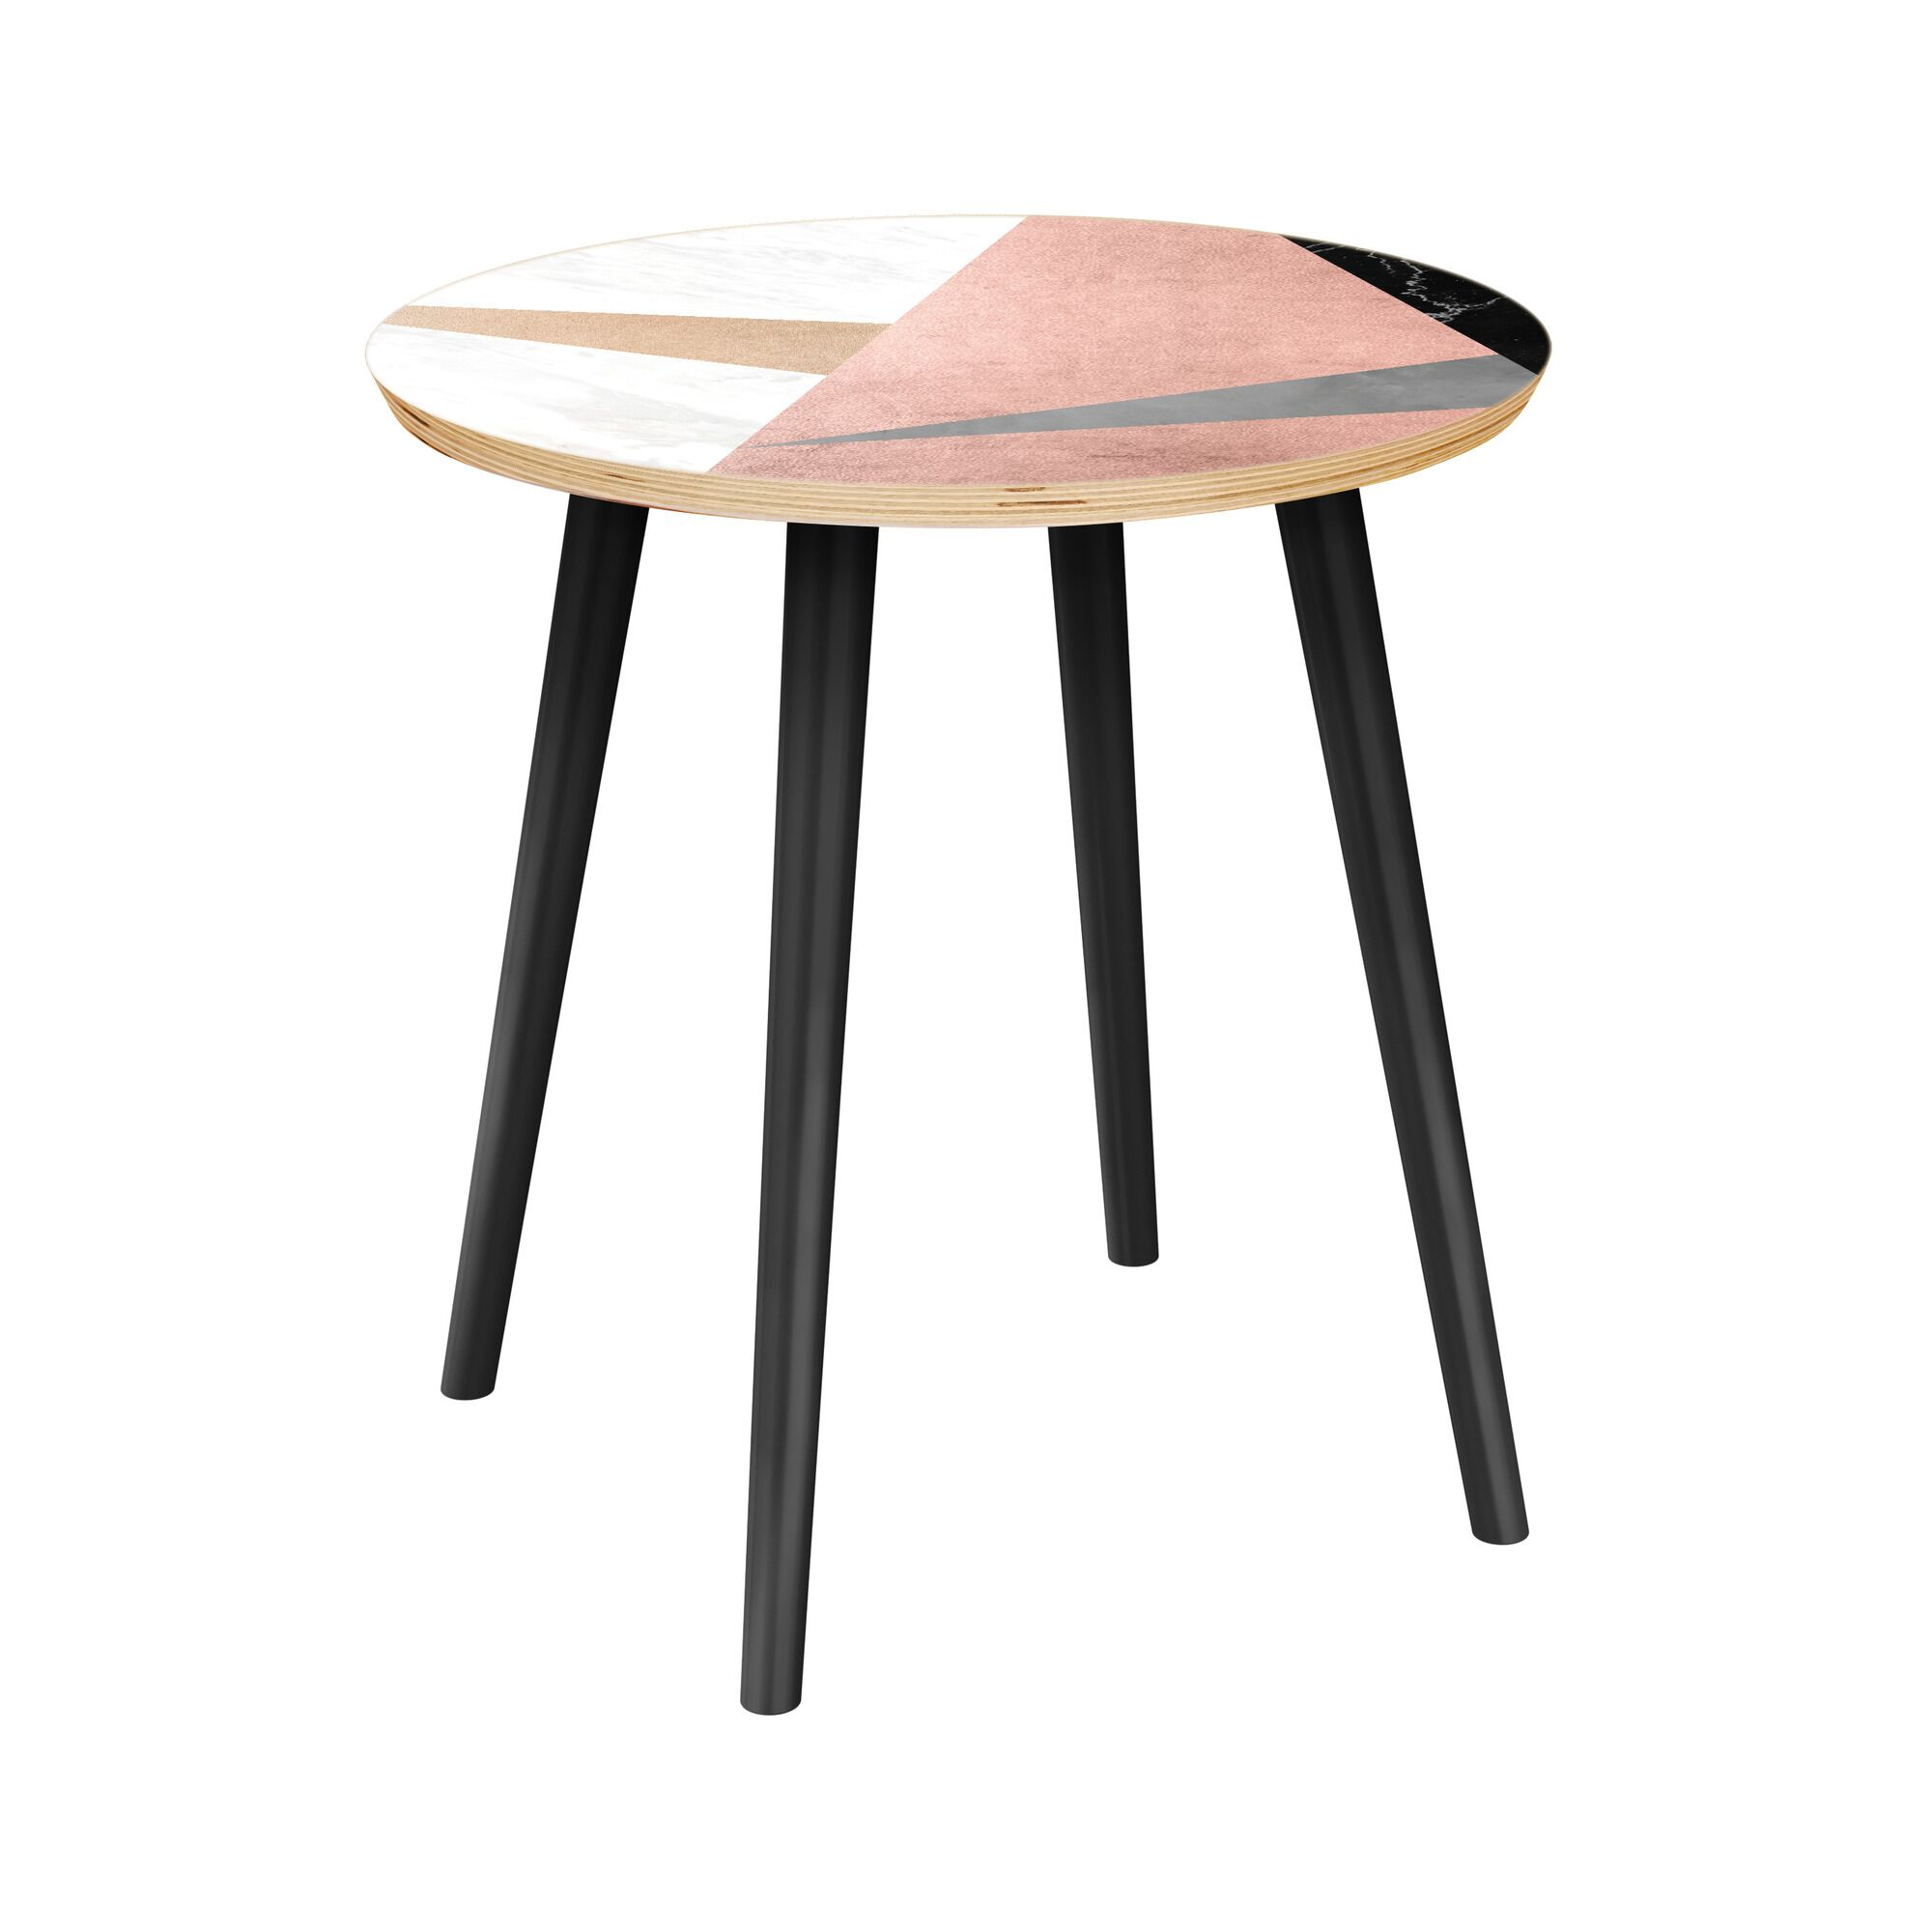 Mcgahey End Table Table Top Color: Natural, Table Base Color: Black